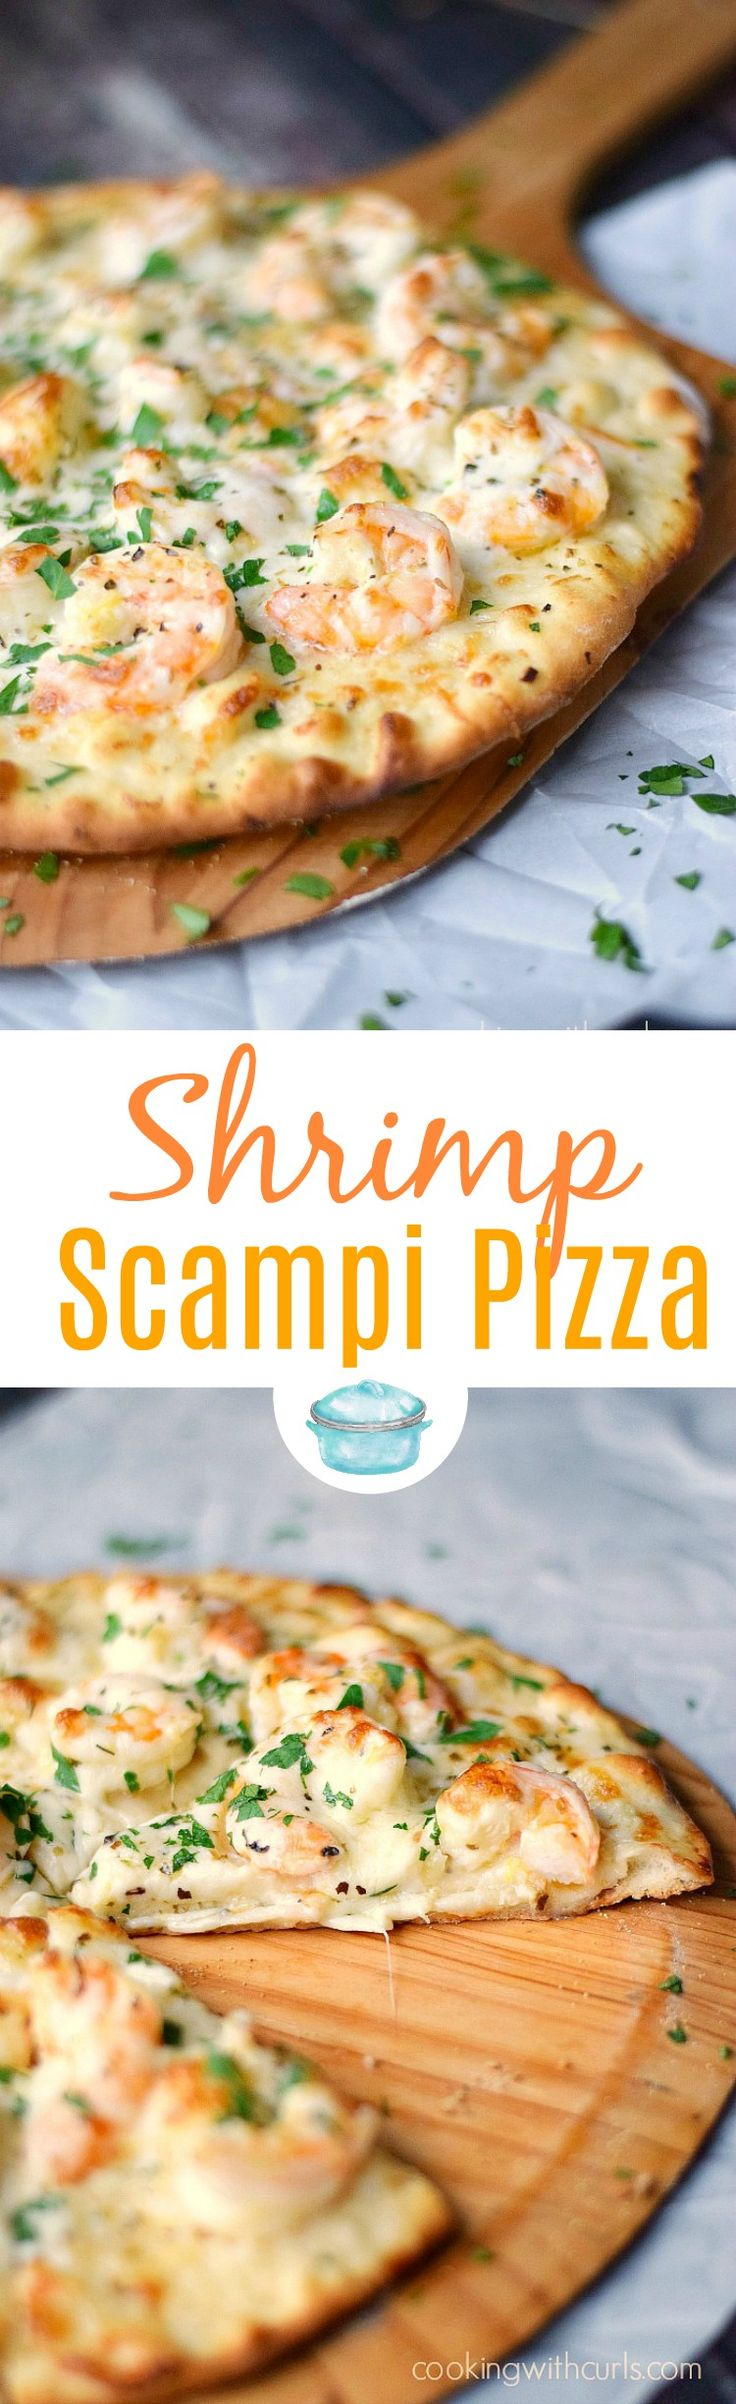 Shrimp Scampi Pizza topped with a light garlic-lemon sauce, shrimp, and cheeses. #pizza #shrimp #pizzanight via @cookwithcurls